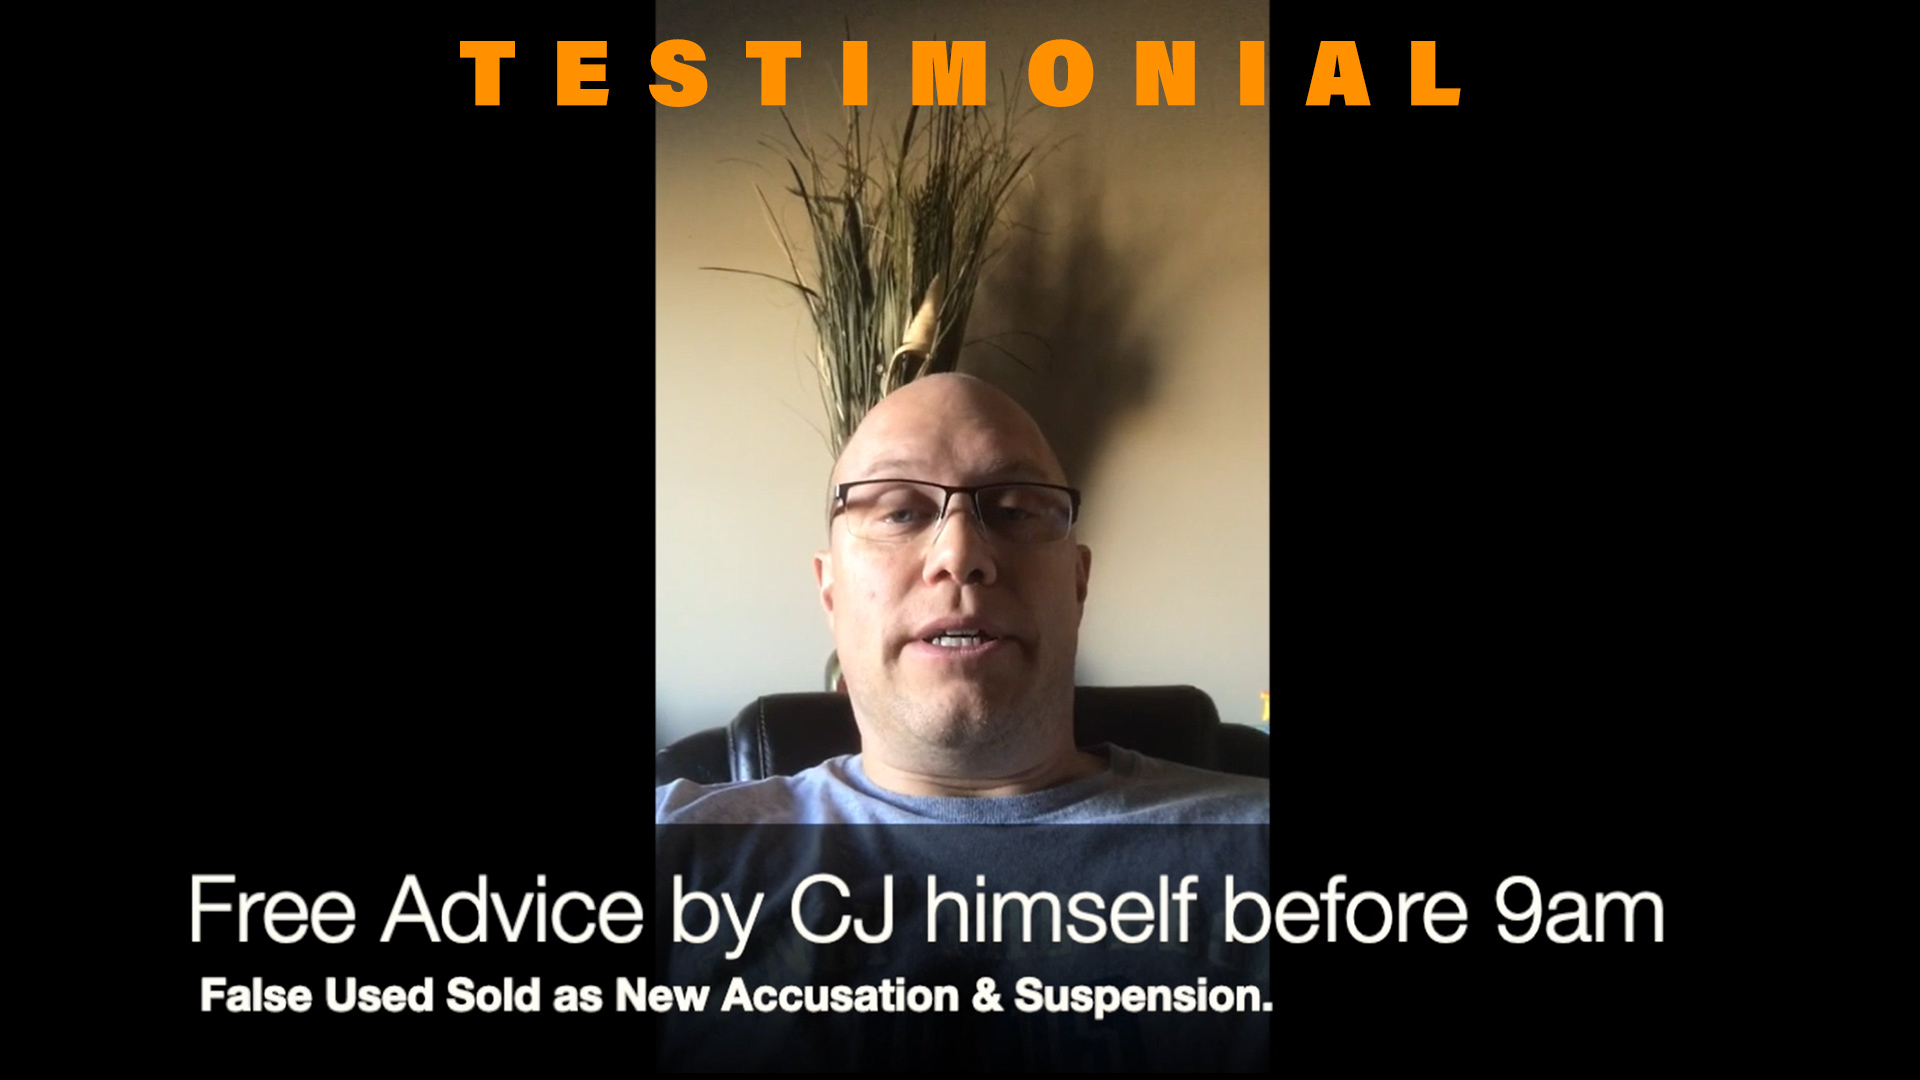 Testimonial - False Used Sold as New Accusation & No Charge